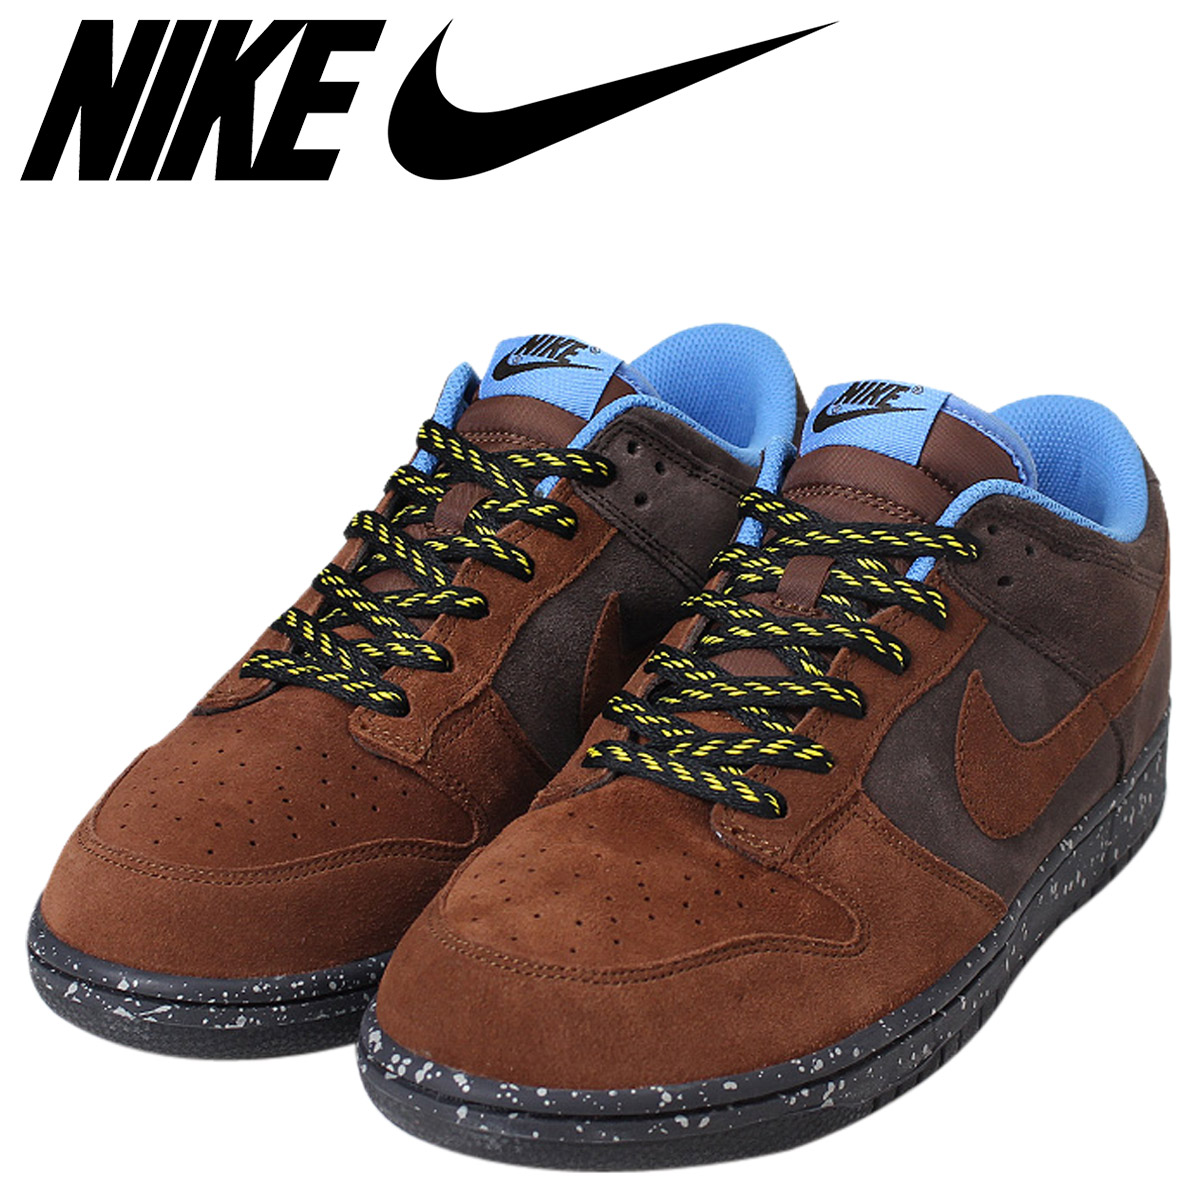 b9ad7822ac98 Sugar Online Shop  Nike NIKE dunk low sneakers DUNK LOW CL BAROQUE ...